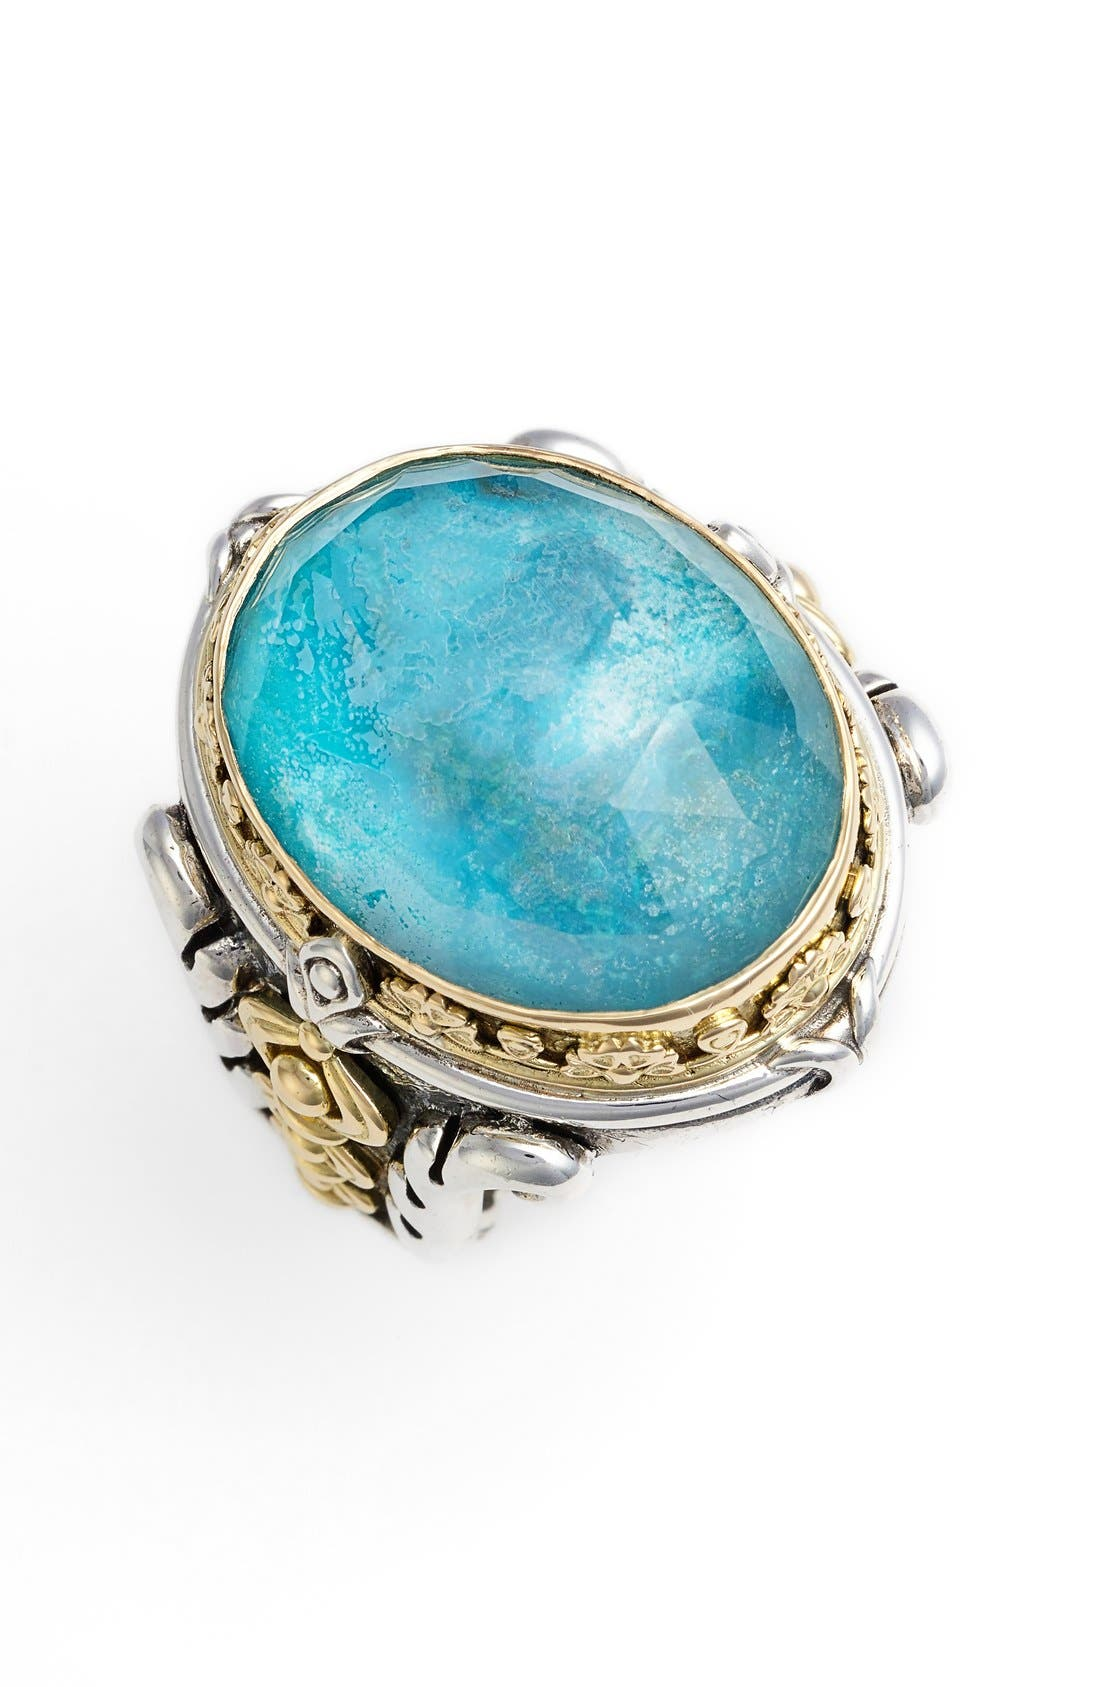 'Iliada' Large Oval Semiprecious Stone Ring,                         Main,                         color, 040